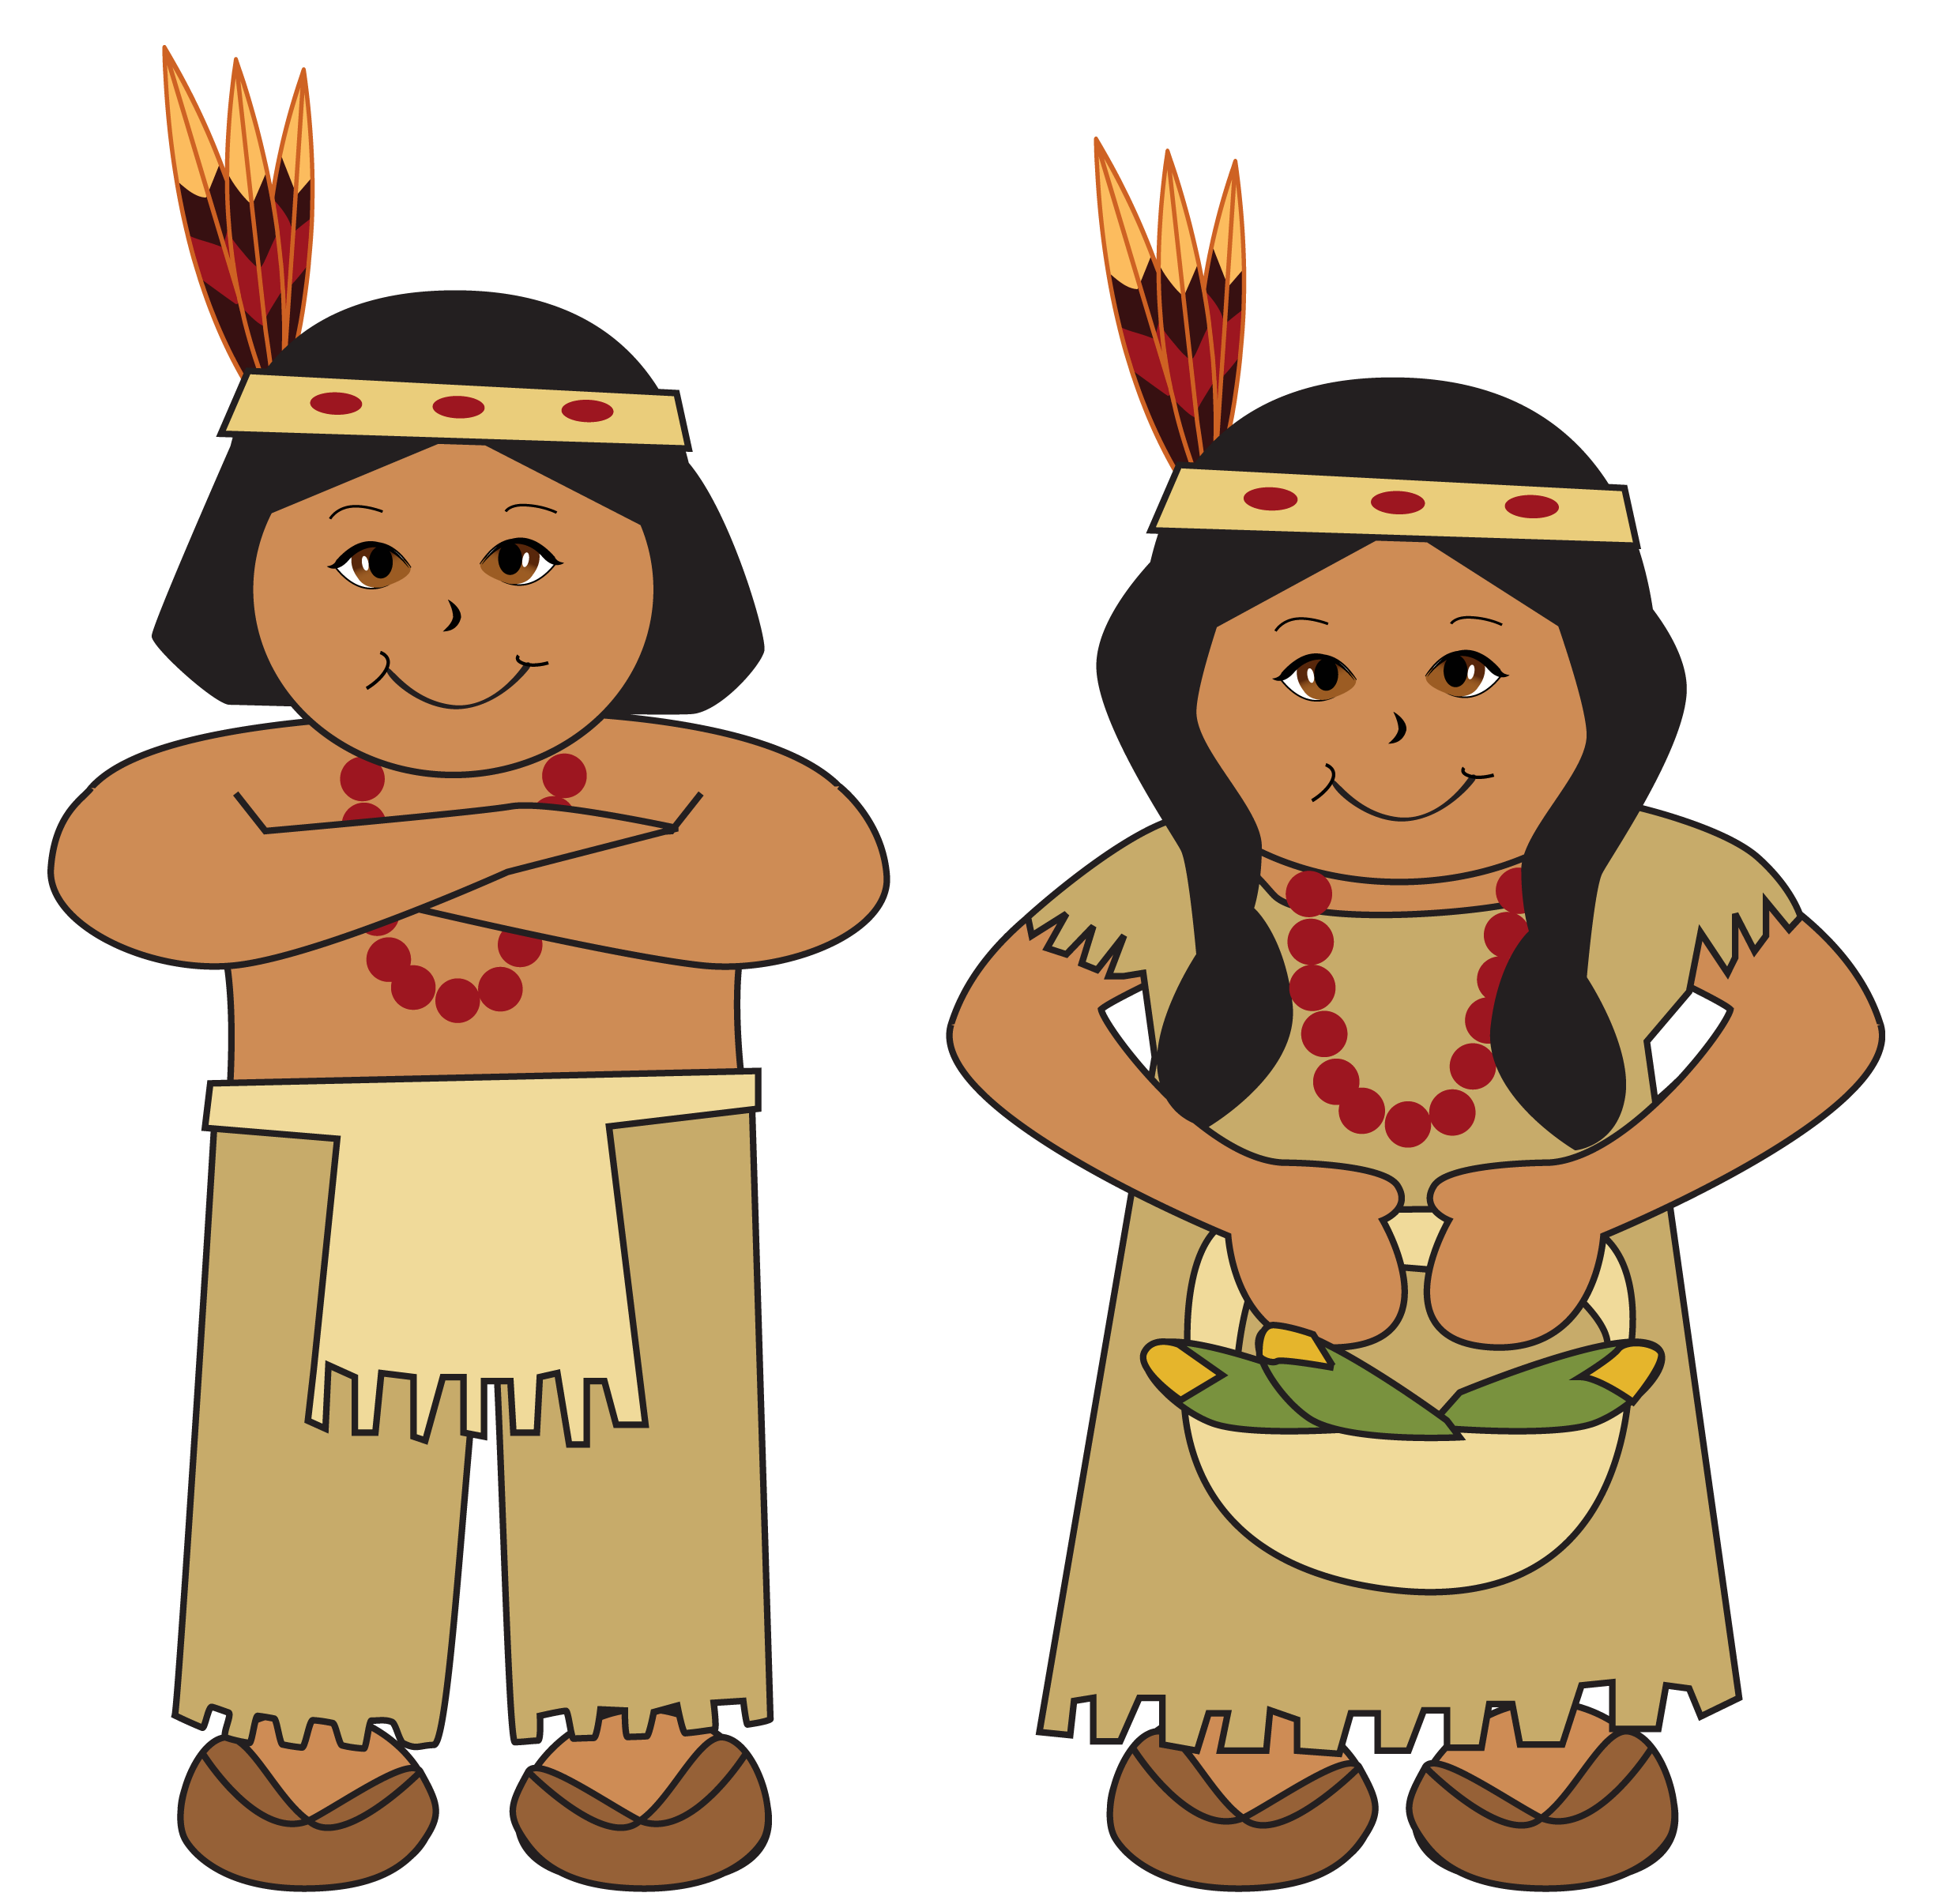 Pilgrims clipart teacher. Native americans picture indian